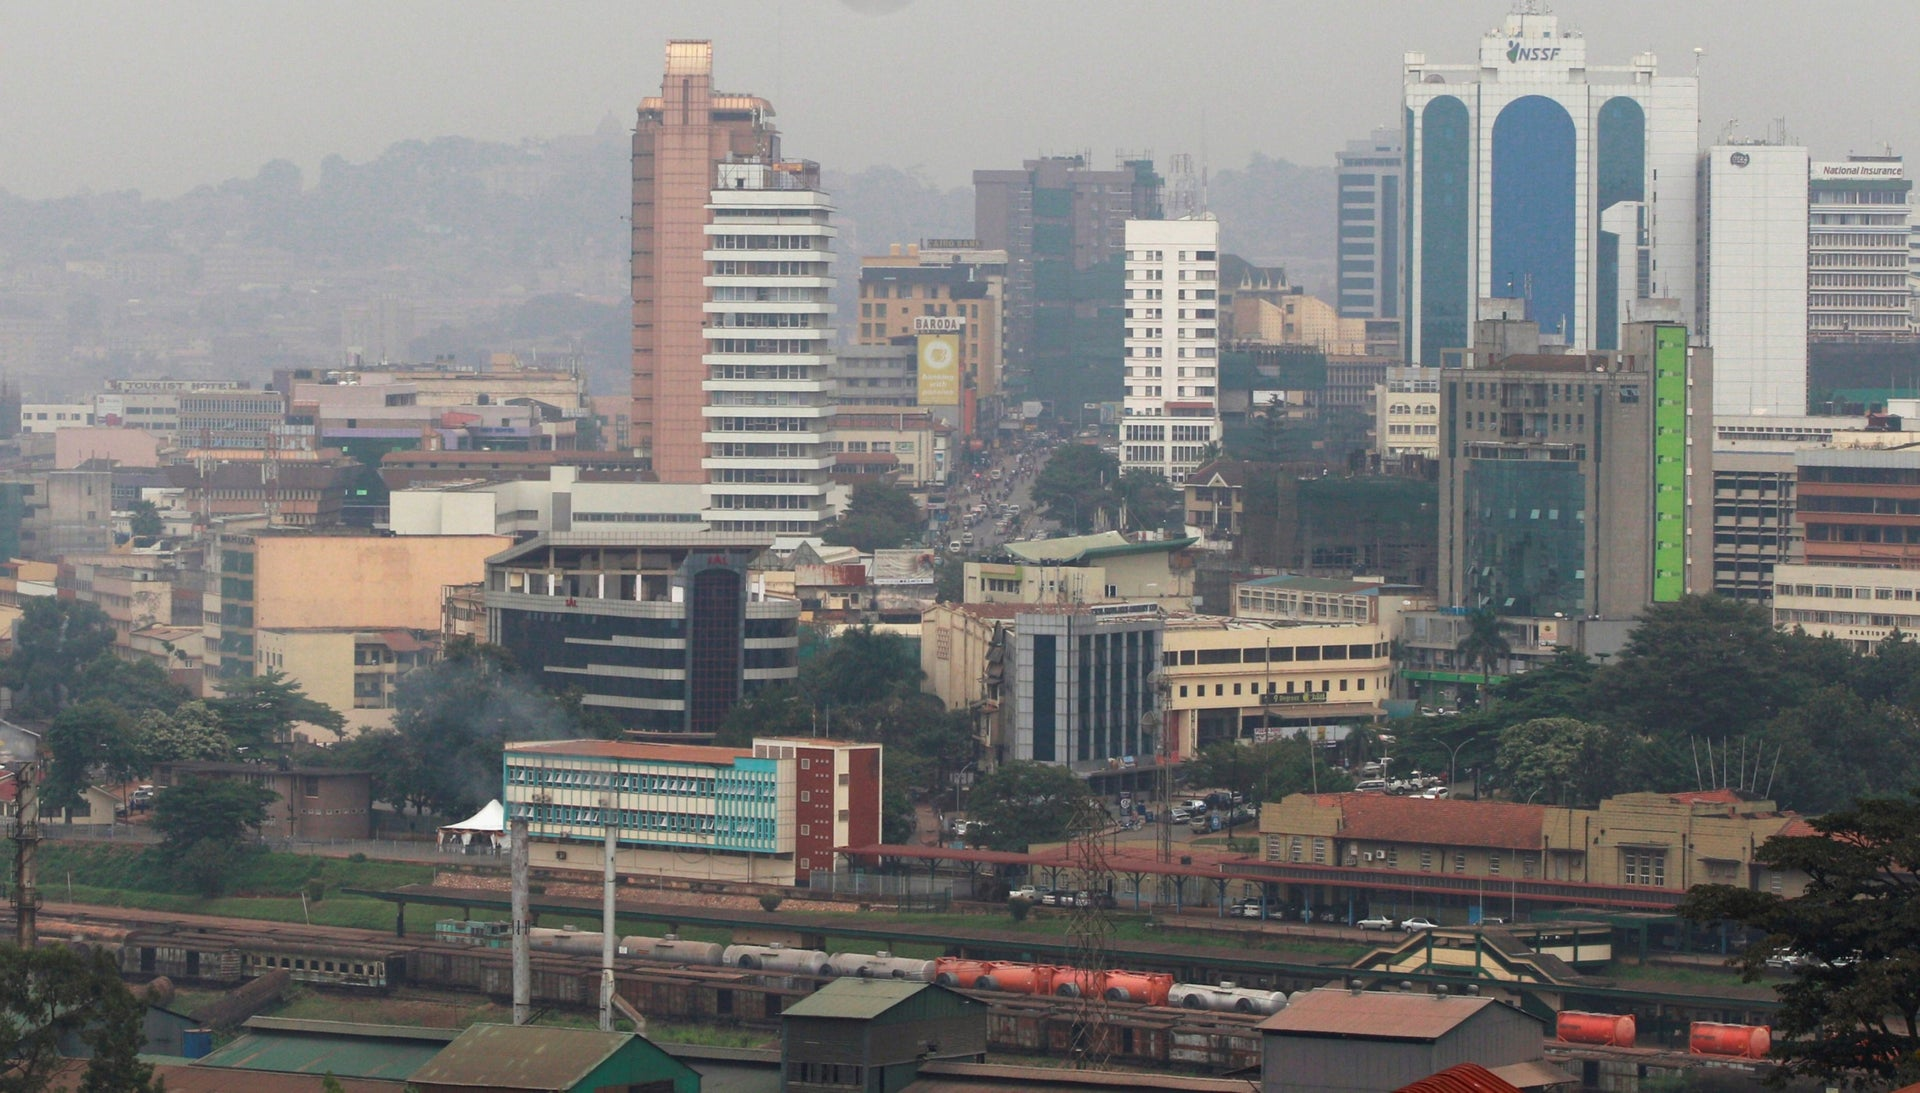 The capital of Uganda, Kampala, in 2015.